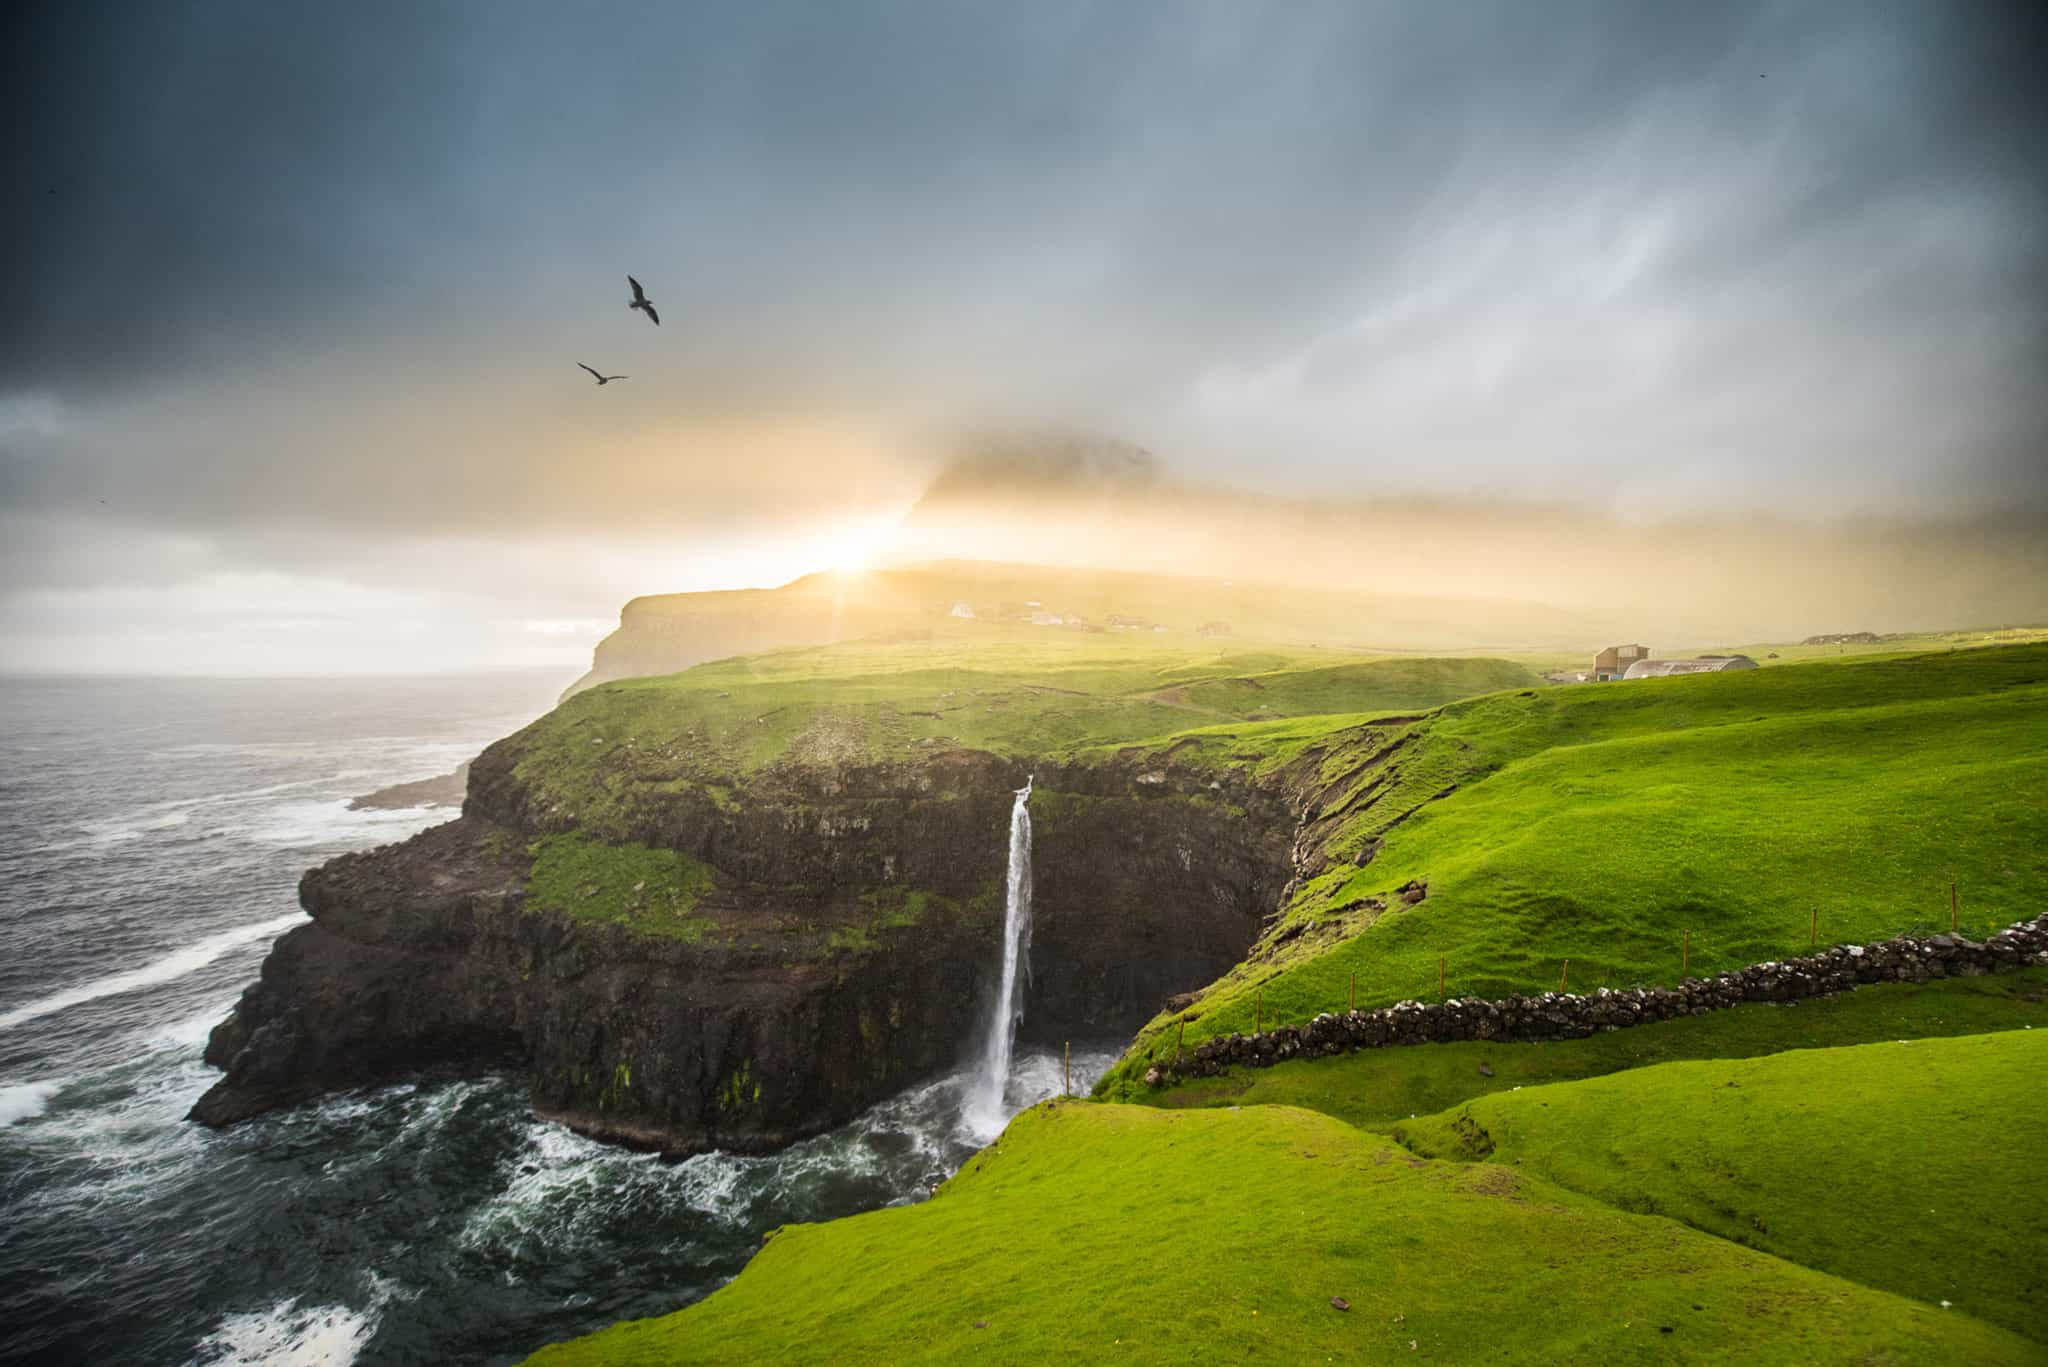 Landscape Images The Most Epic Photos Taken On Earth